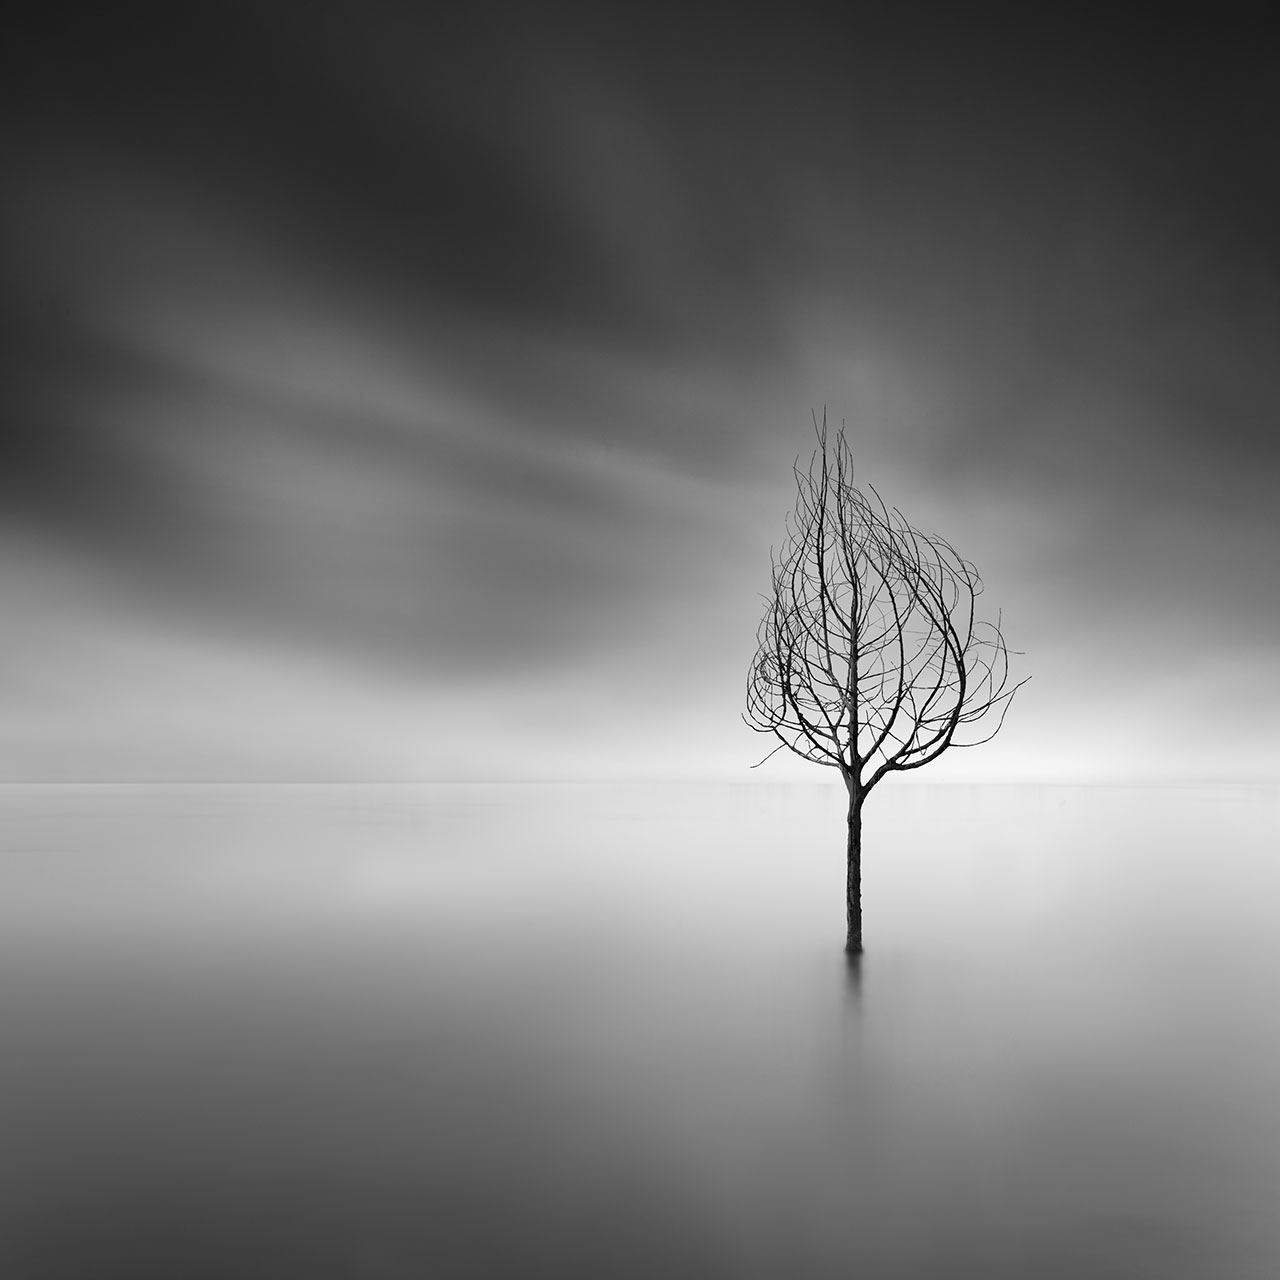 George Digalakis, Like a dream. © George Digalakis.